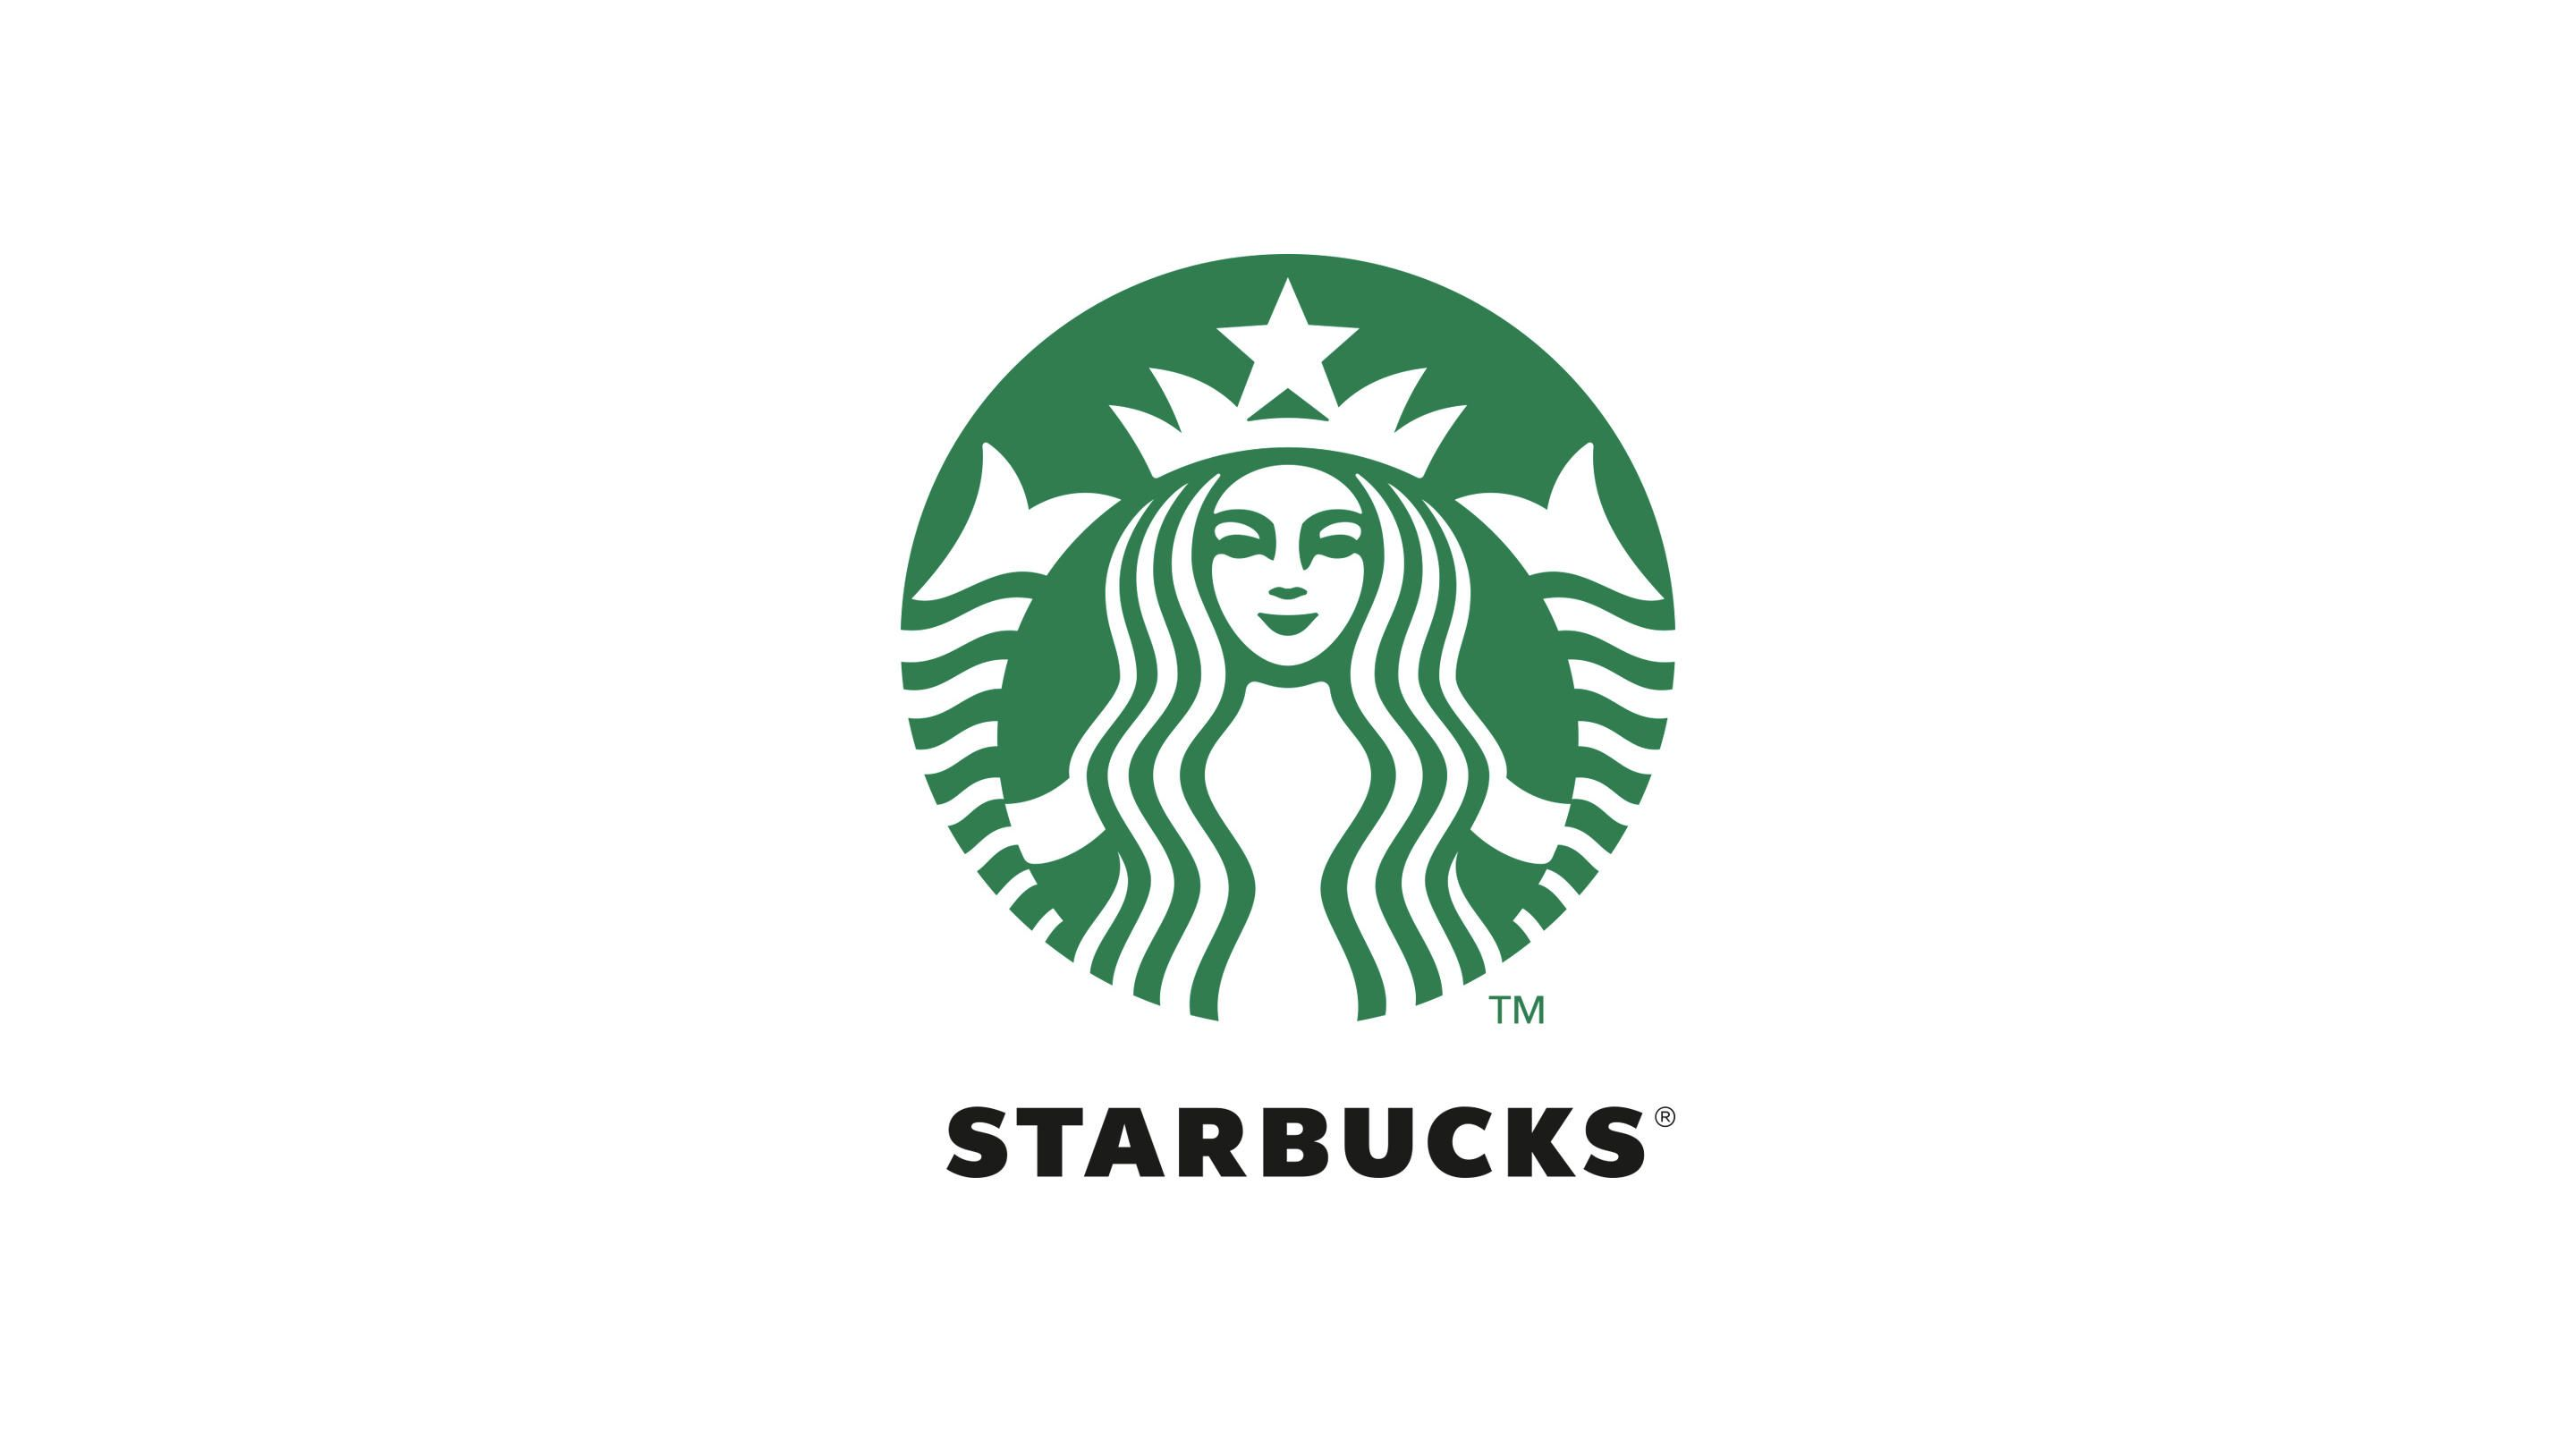 Starbucks Logo - Starbucks Logo - Big Brothers Big Sisters of Central Indiana